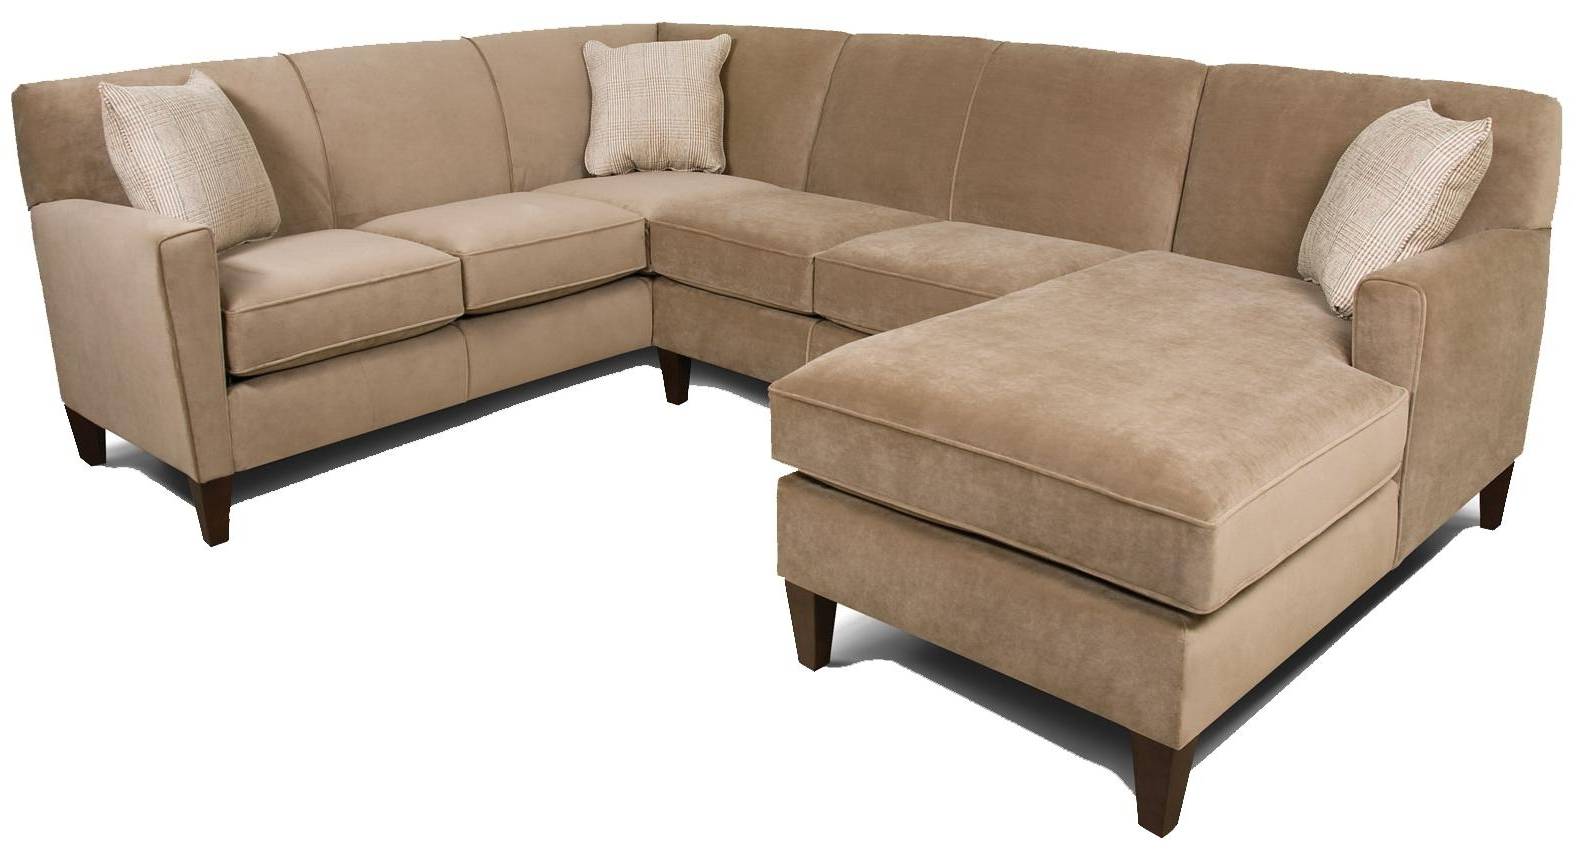 Green Bay Wi Sectional Sofas In Well Known England Collegedale Contemporary 3 Piece Sectional Sofa With Laf (View 7 of 15)